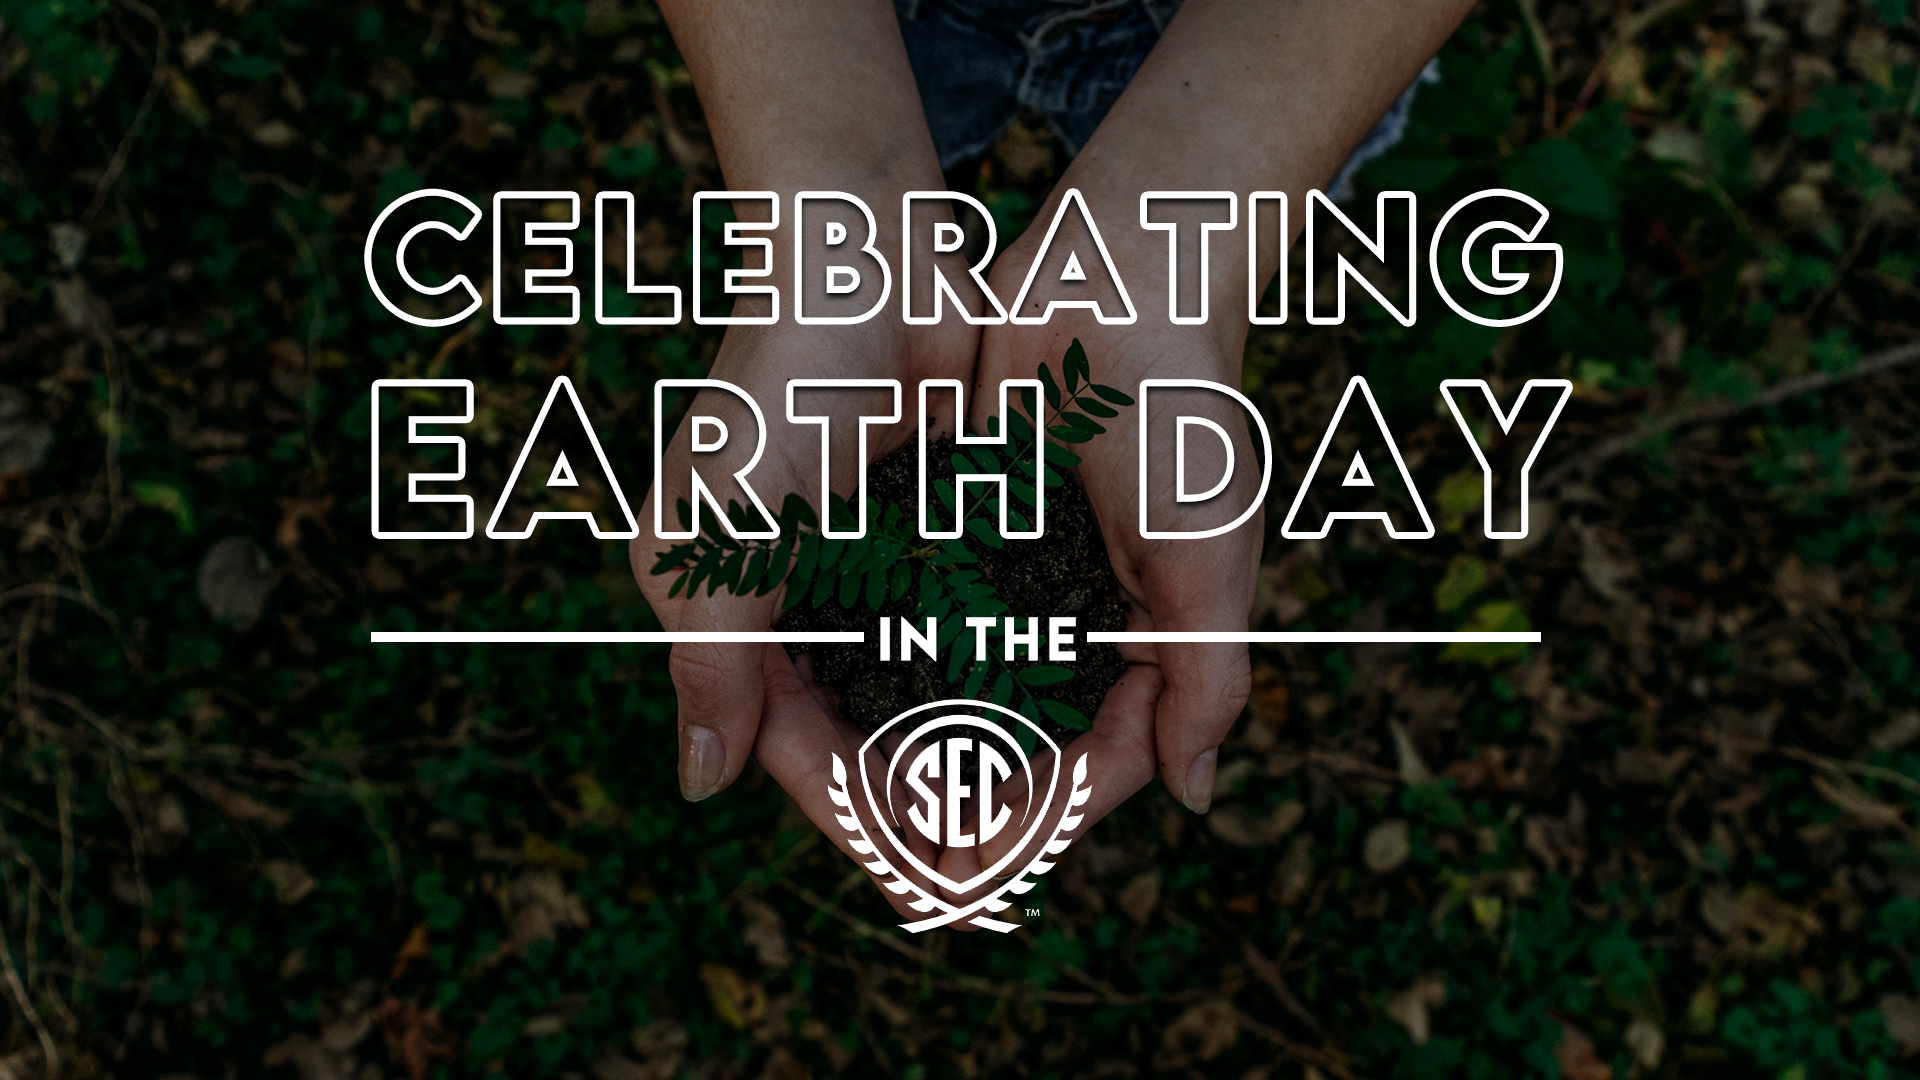 The SEC Goes Green: Celebrating Earth Day in the Southeastern Conference